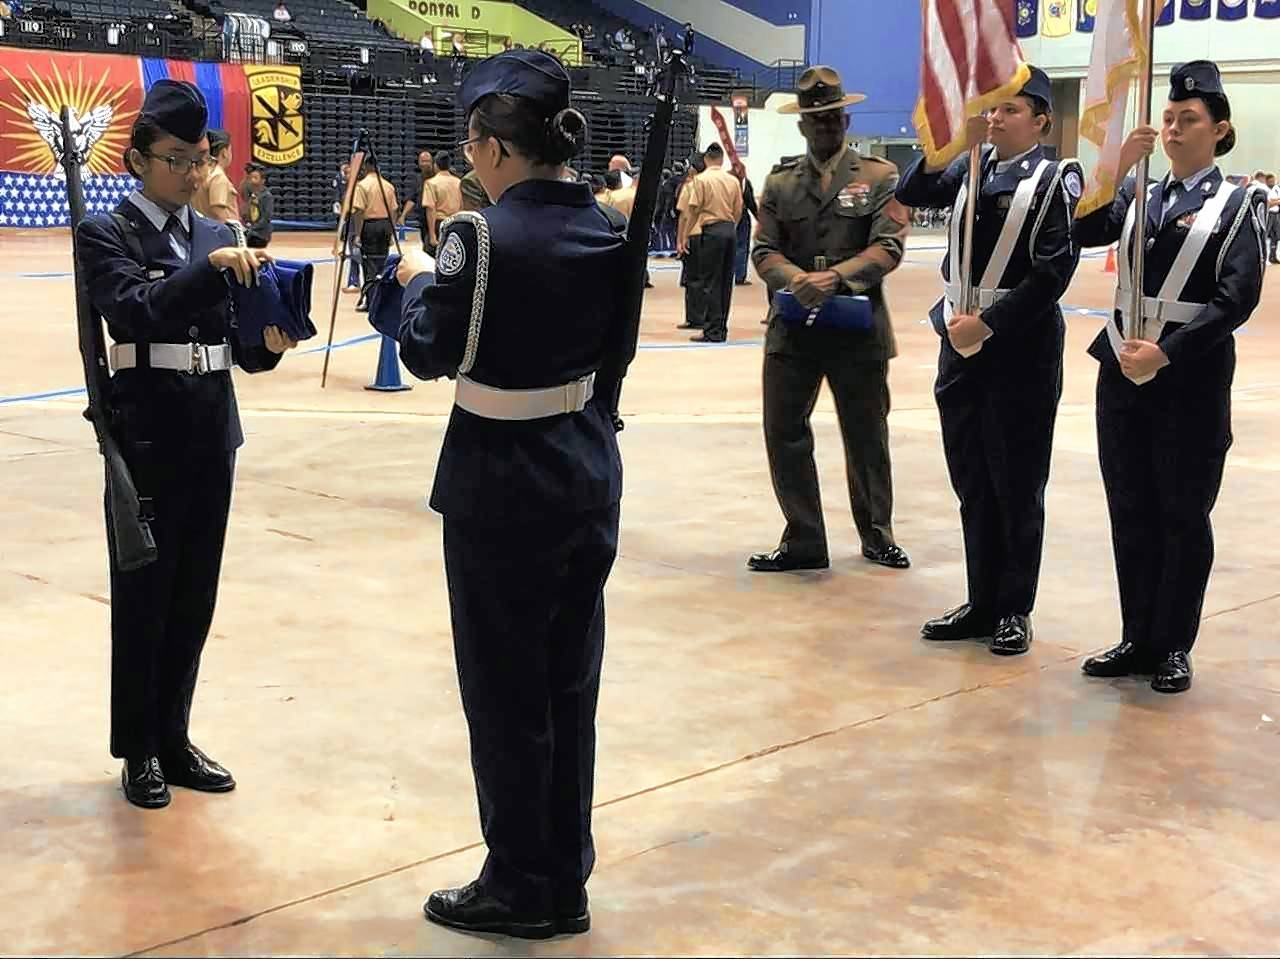 West Aurora High School's Air Force ROTC Lady Blackhawks Color Guard competes at nationals in May. West Aurora and Bolingbrook high schools are among only 14 schools statewide to have an Air Force ROTC program. Elgin Area School District U-46 is considering starting an ROTC program though officials have not discussed what branch of the military to pursue.